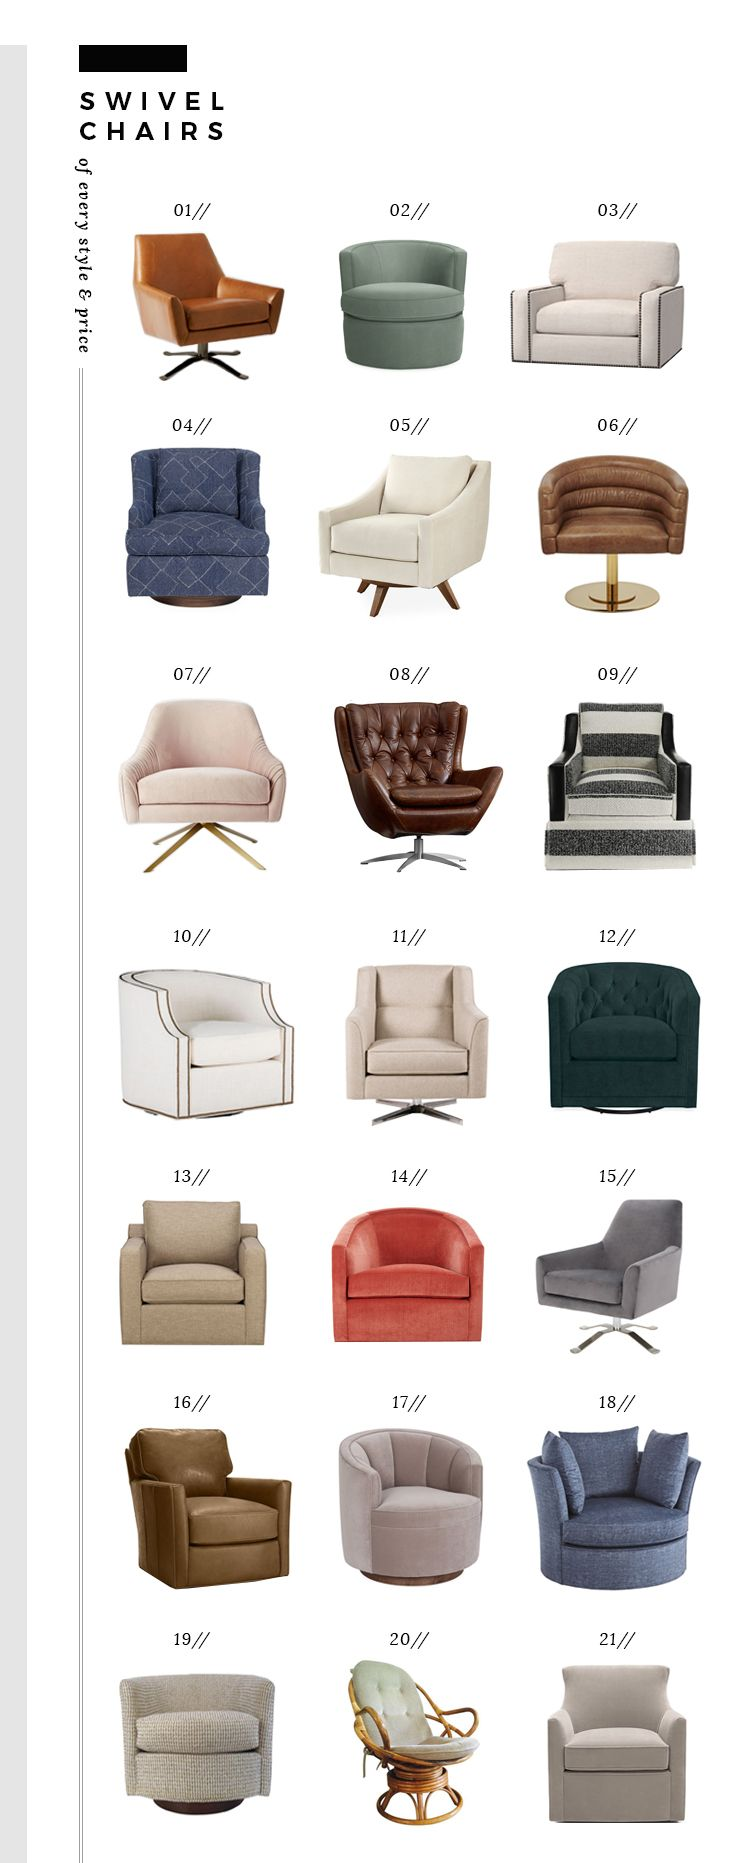 Comfortable Swivel Chairs of Every Style and Price – Room for Tuesday